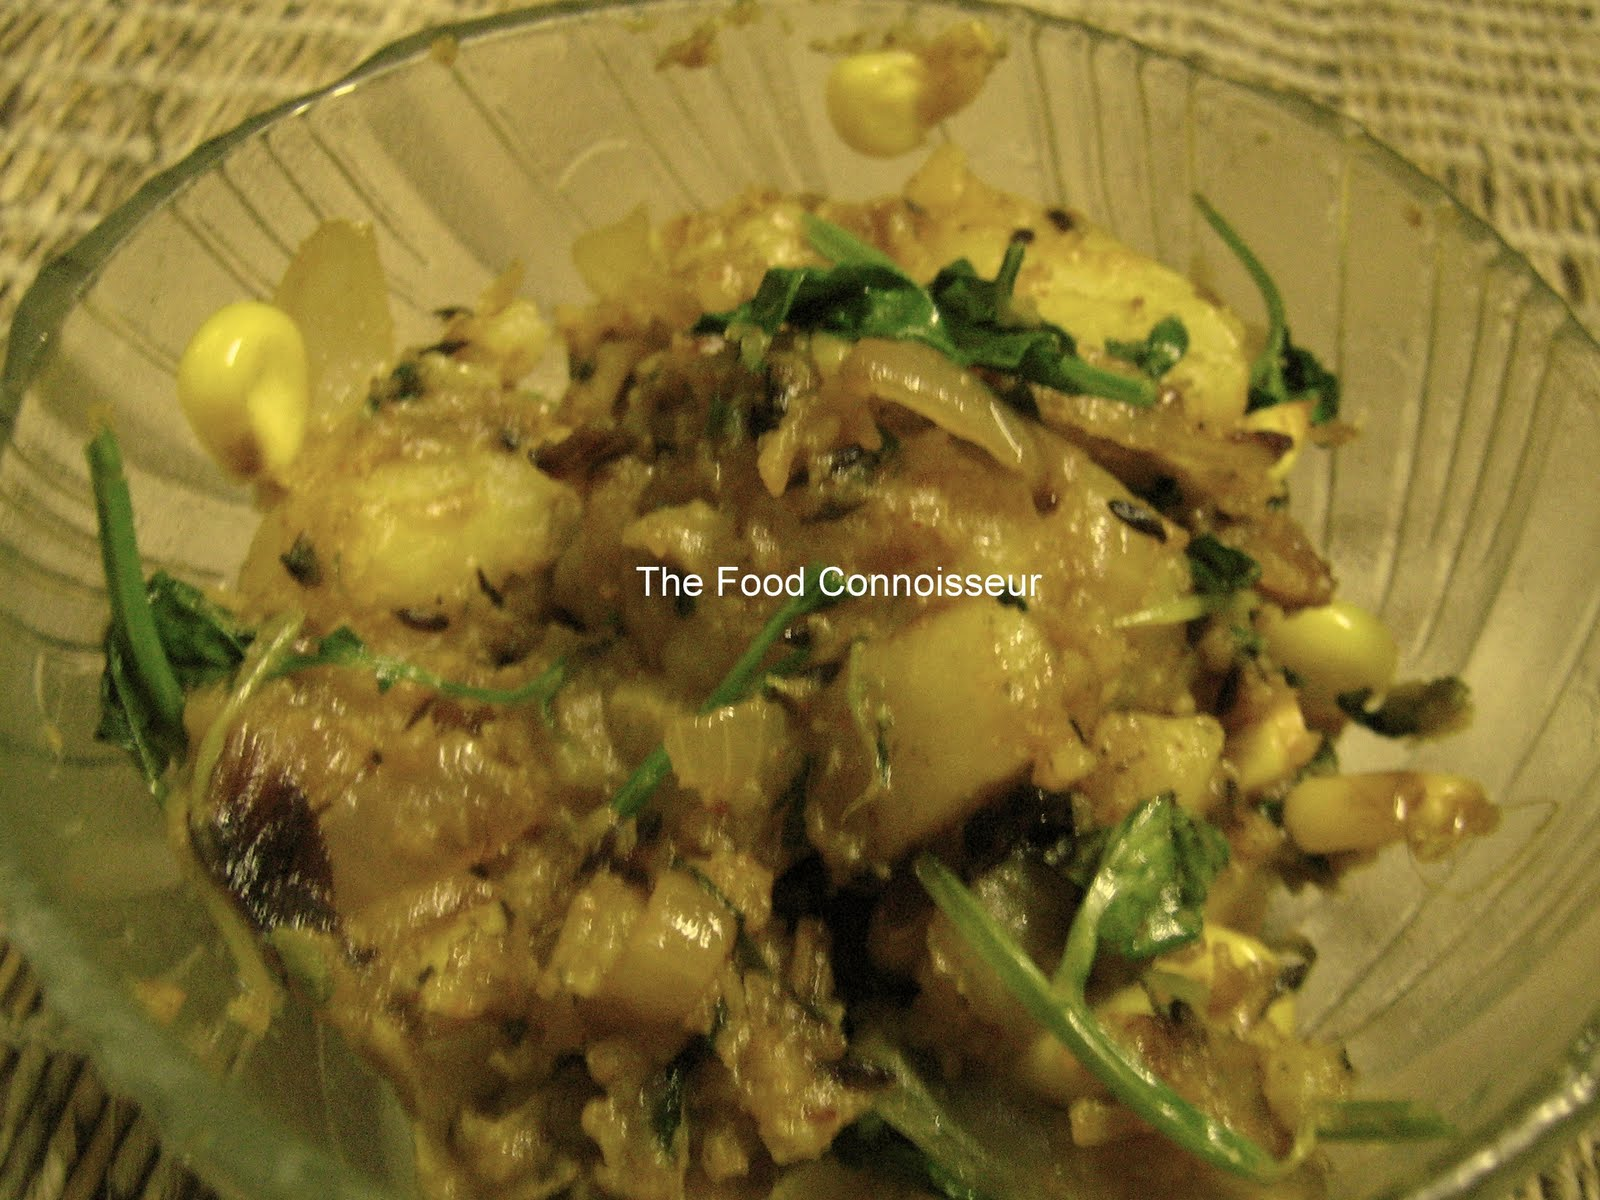 The Food Connoisseur: Aloo Methi (Potatoes with Fenugreek Leaves)